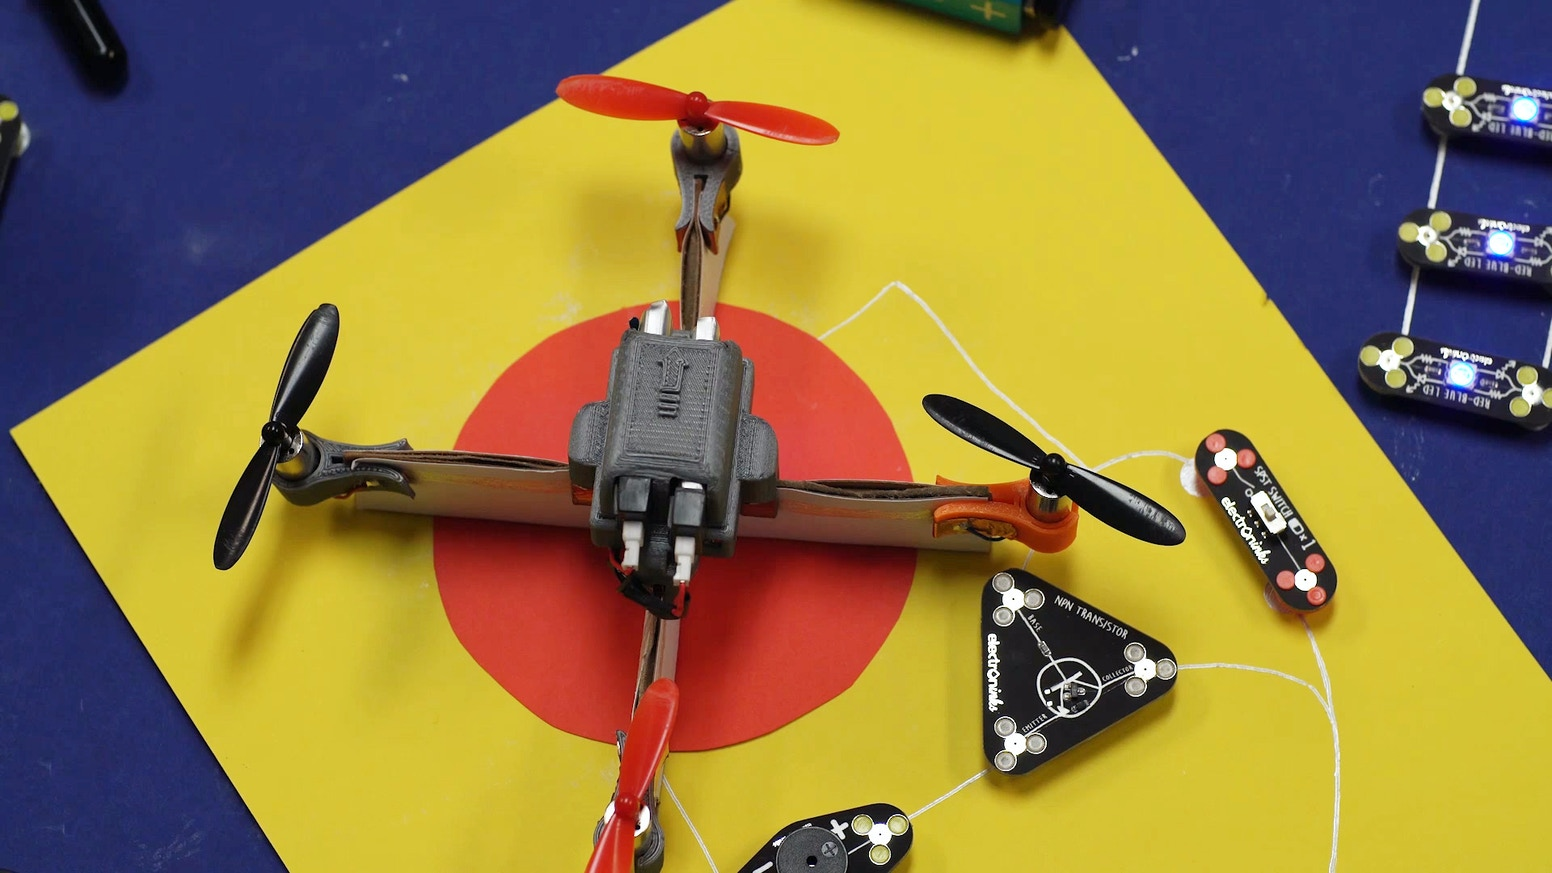 Circuit scribe diy electronic kits by electroninks incorporated our paper based electronics diy project kits using the circuit scribe pen to help creativity take flight with our drone solutioingenieria